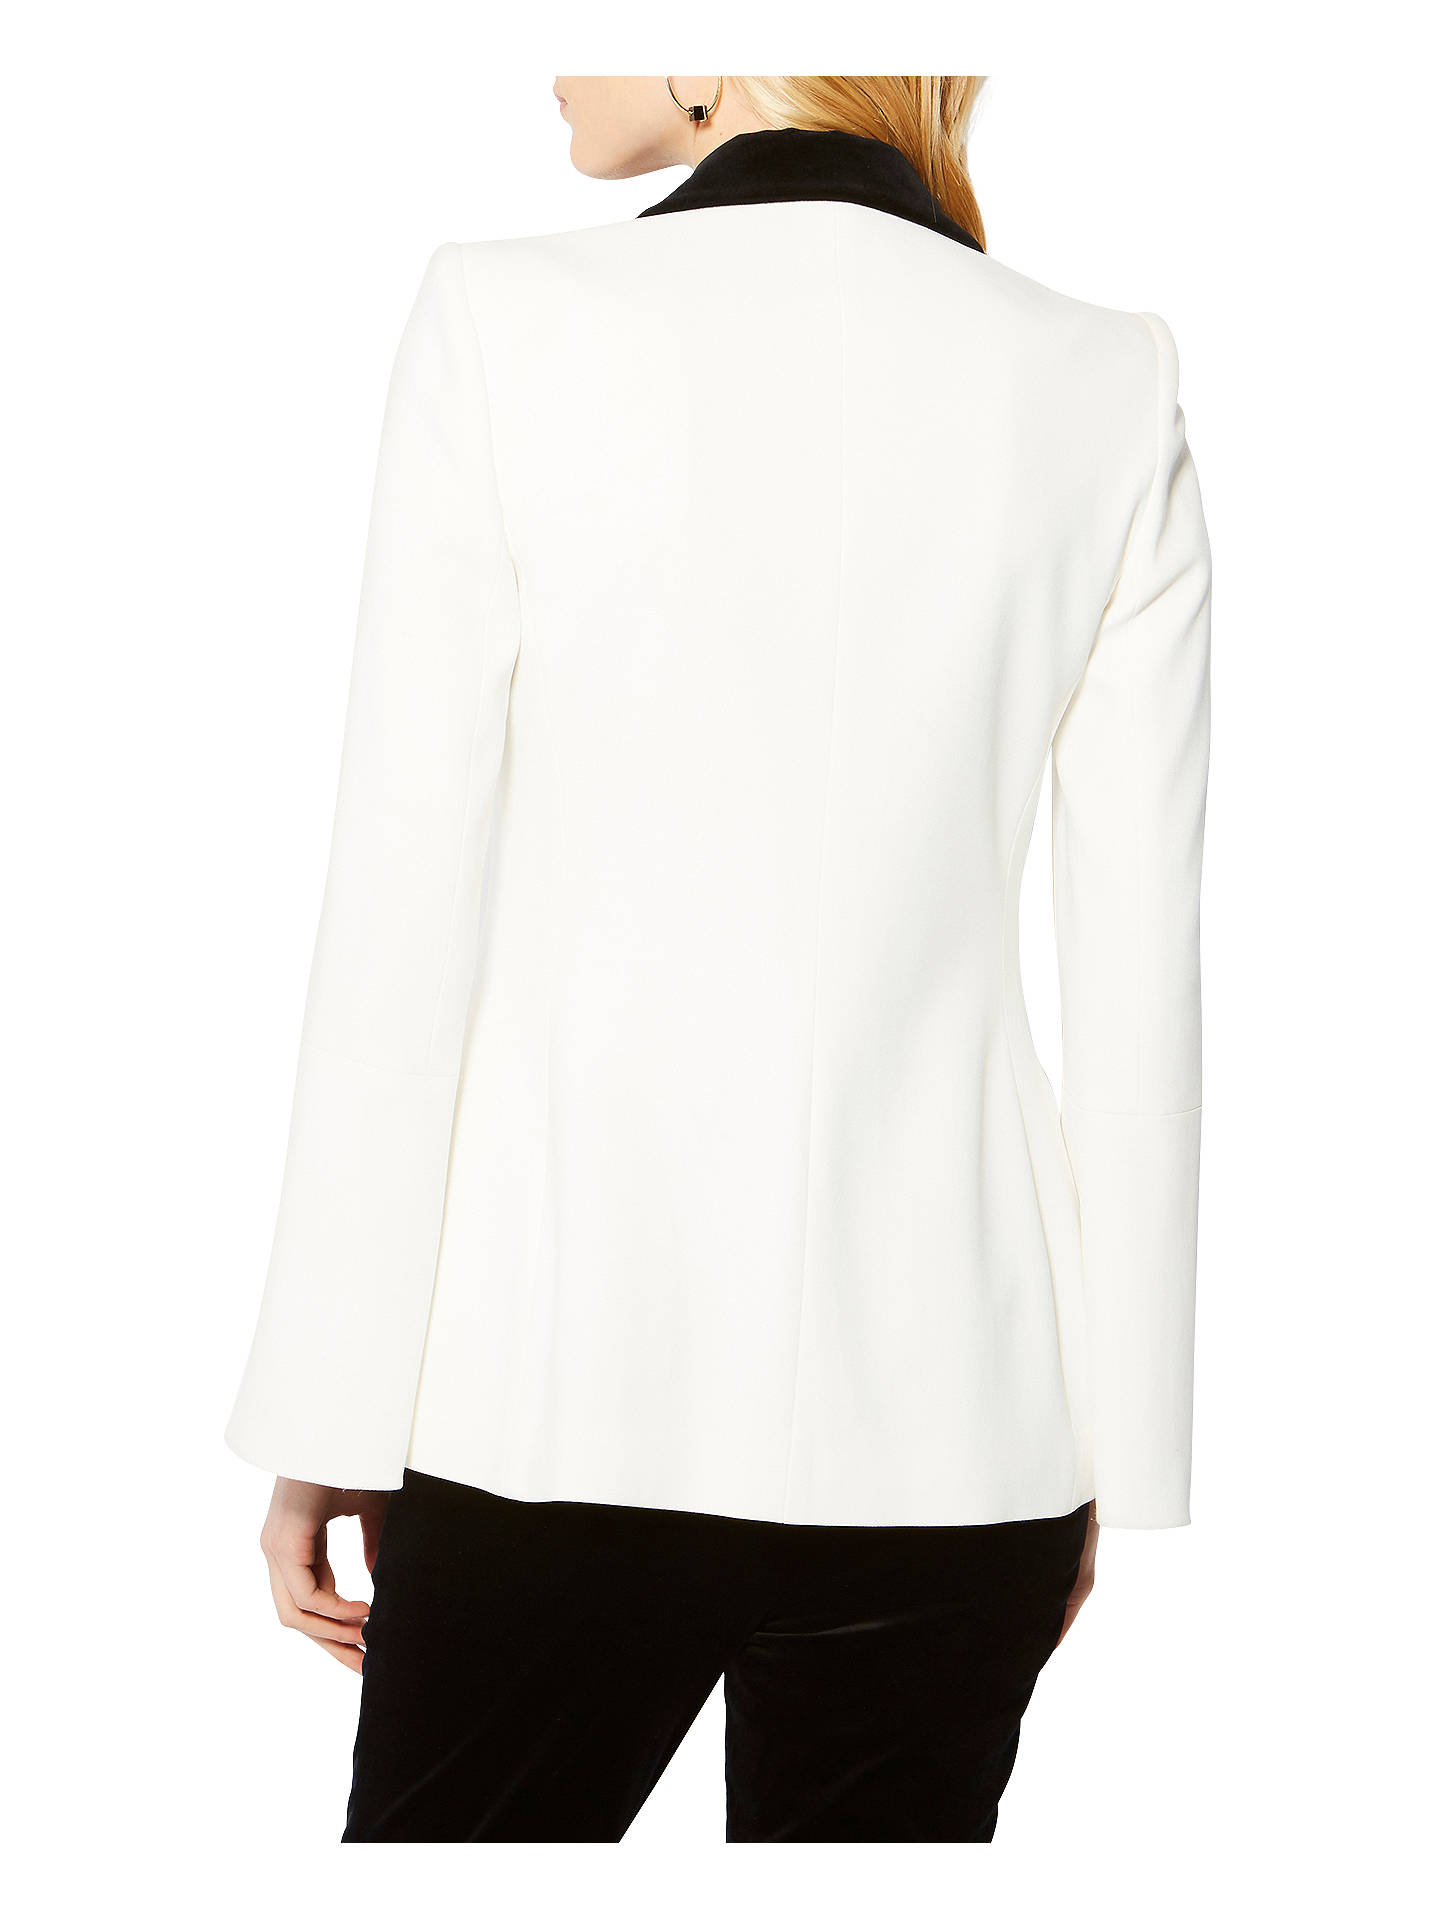 BuyKaren Millen Tuxedo Collection Tailored Blazer, Ivory, 6 Online at johnlewis.com